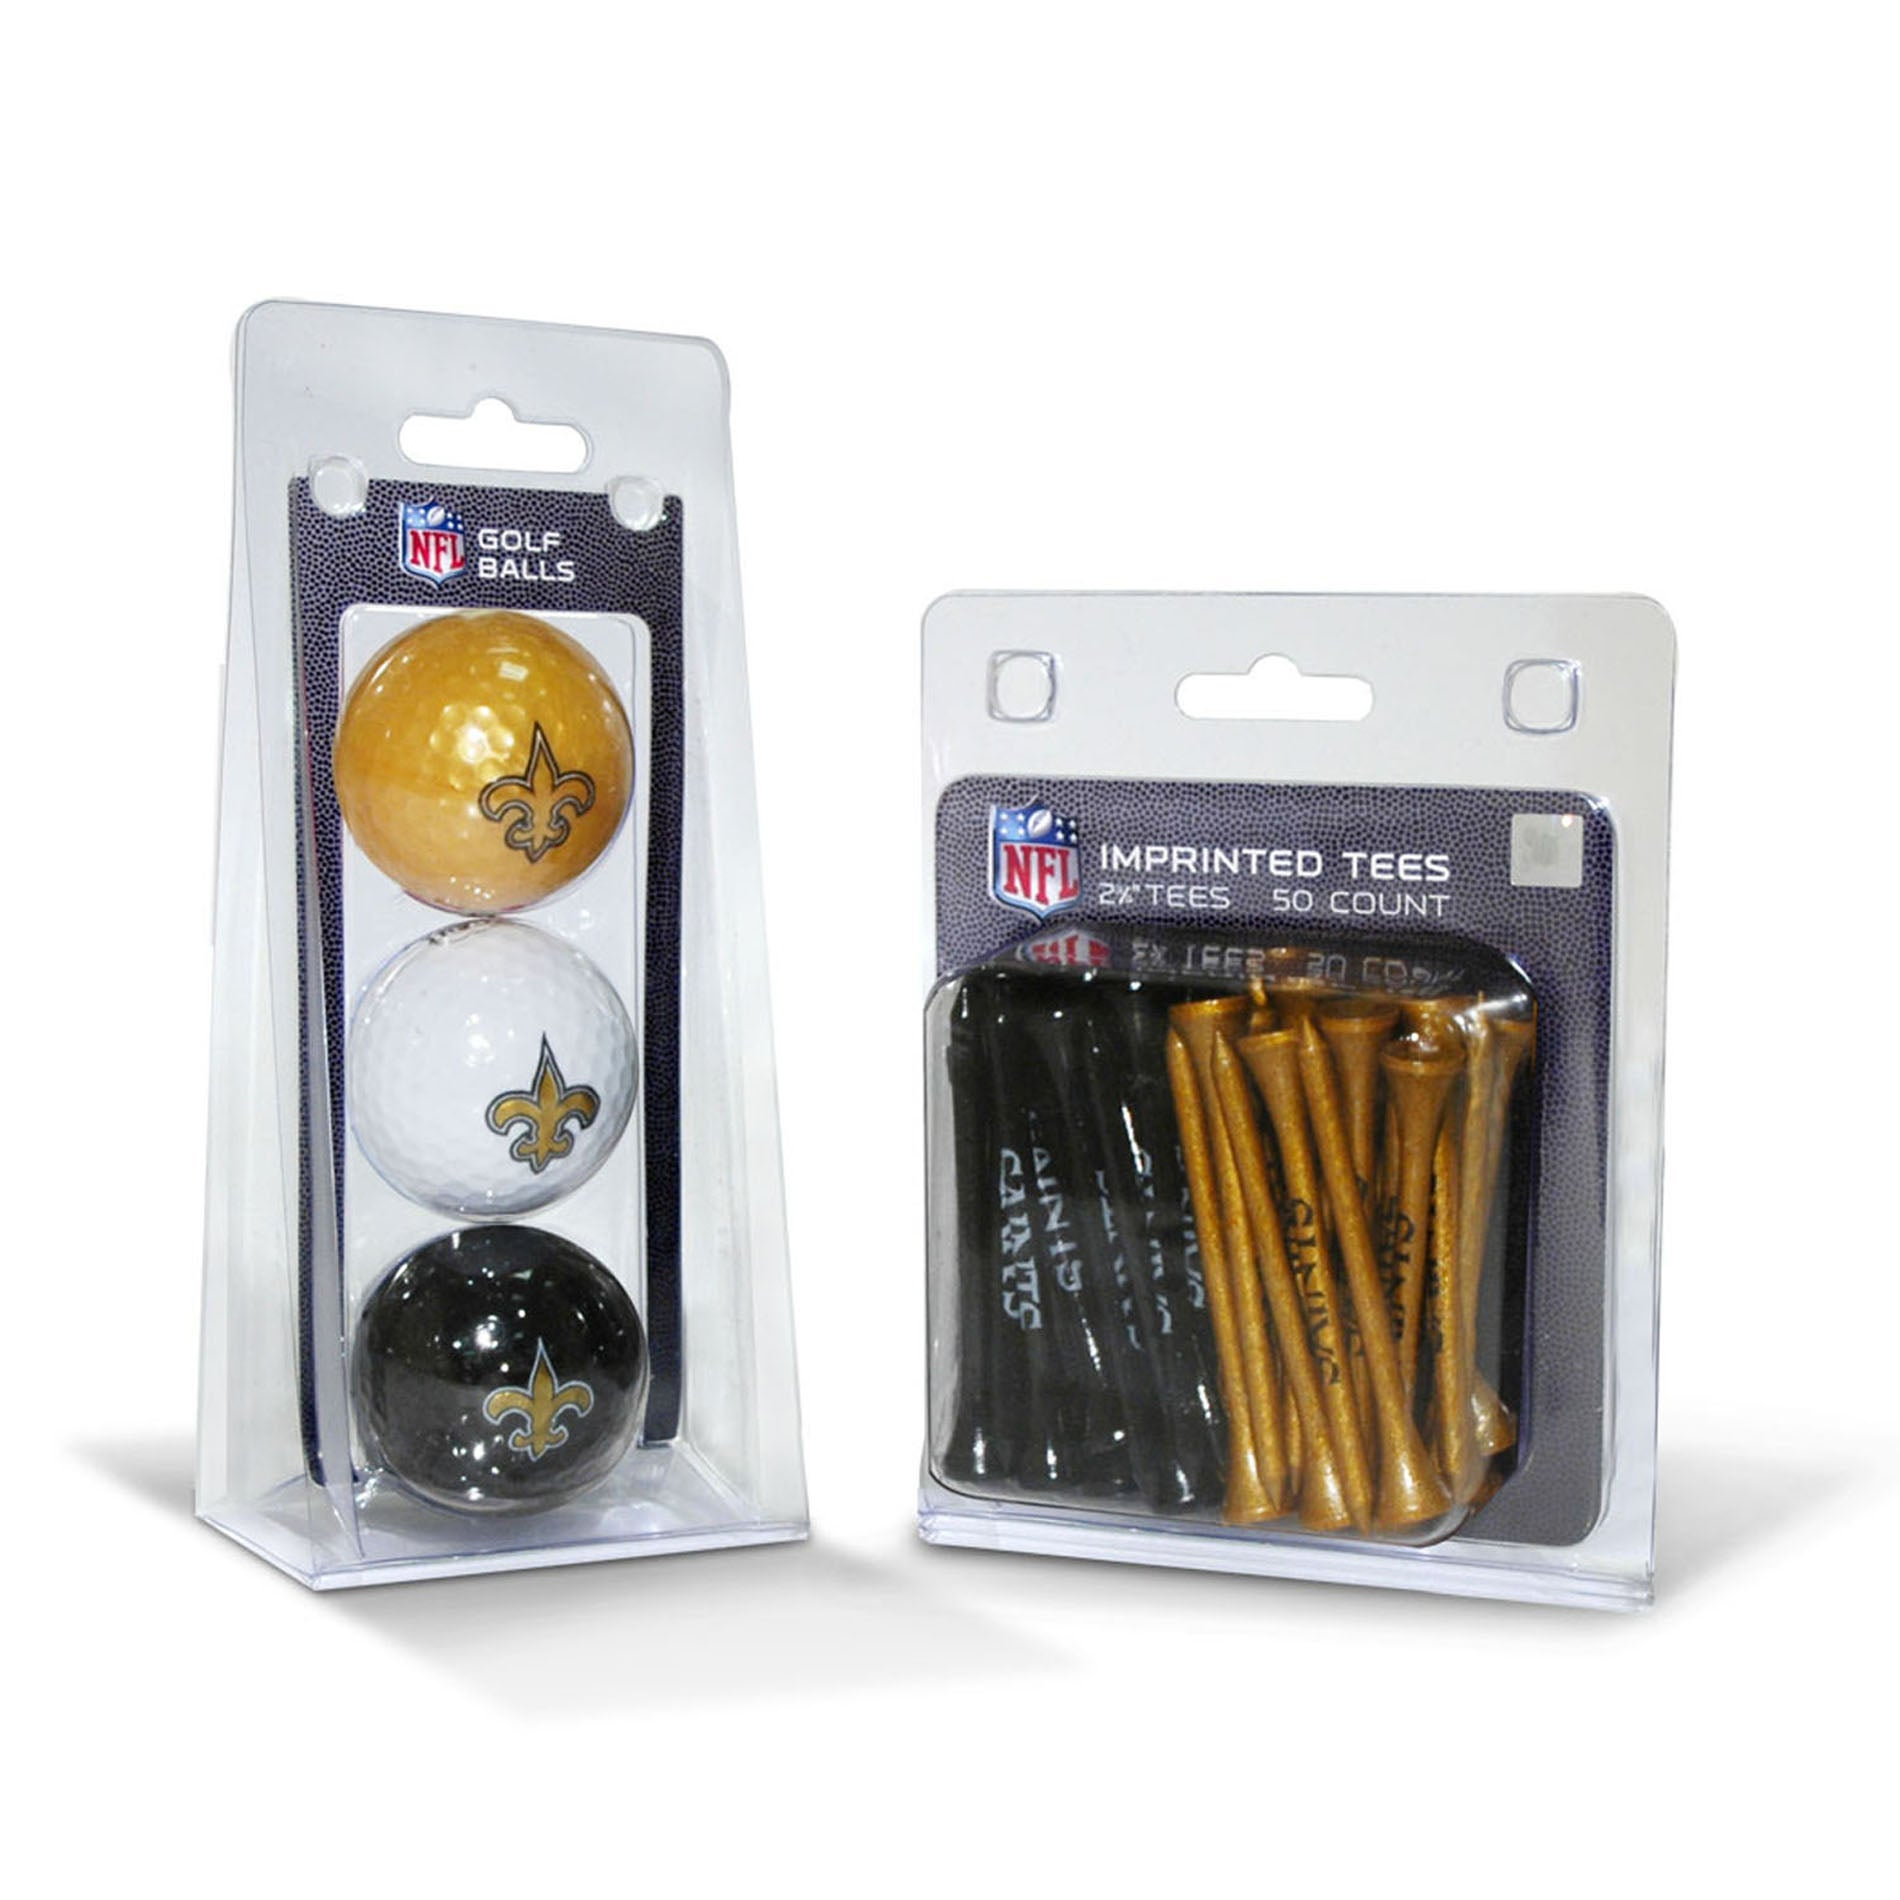 New Orleans Saints NFL Golf Ball and Tee Set